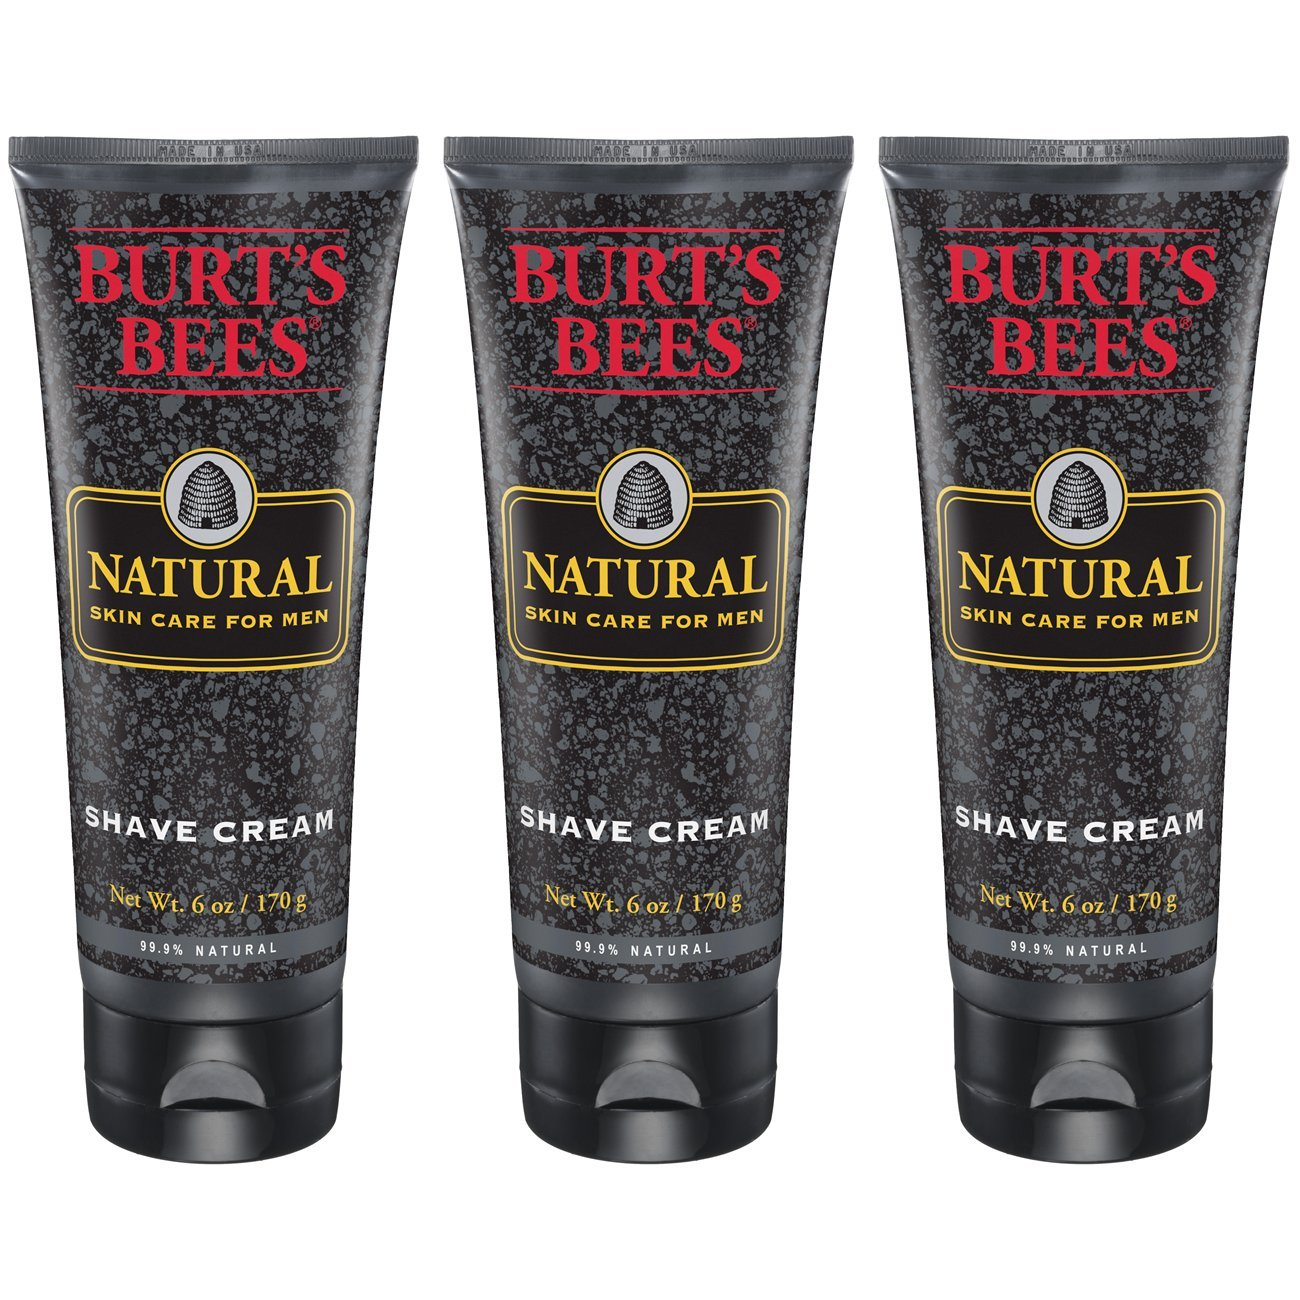 Burt's Bees Natural Skin Care for Men Shave Cream, 6 Ounces, Pack of 3 Burt' s Bees hbf-jjj-omgh-mh3169